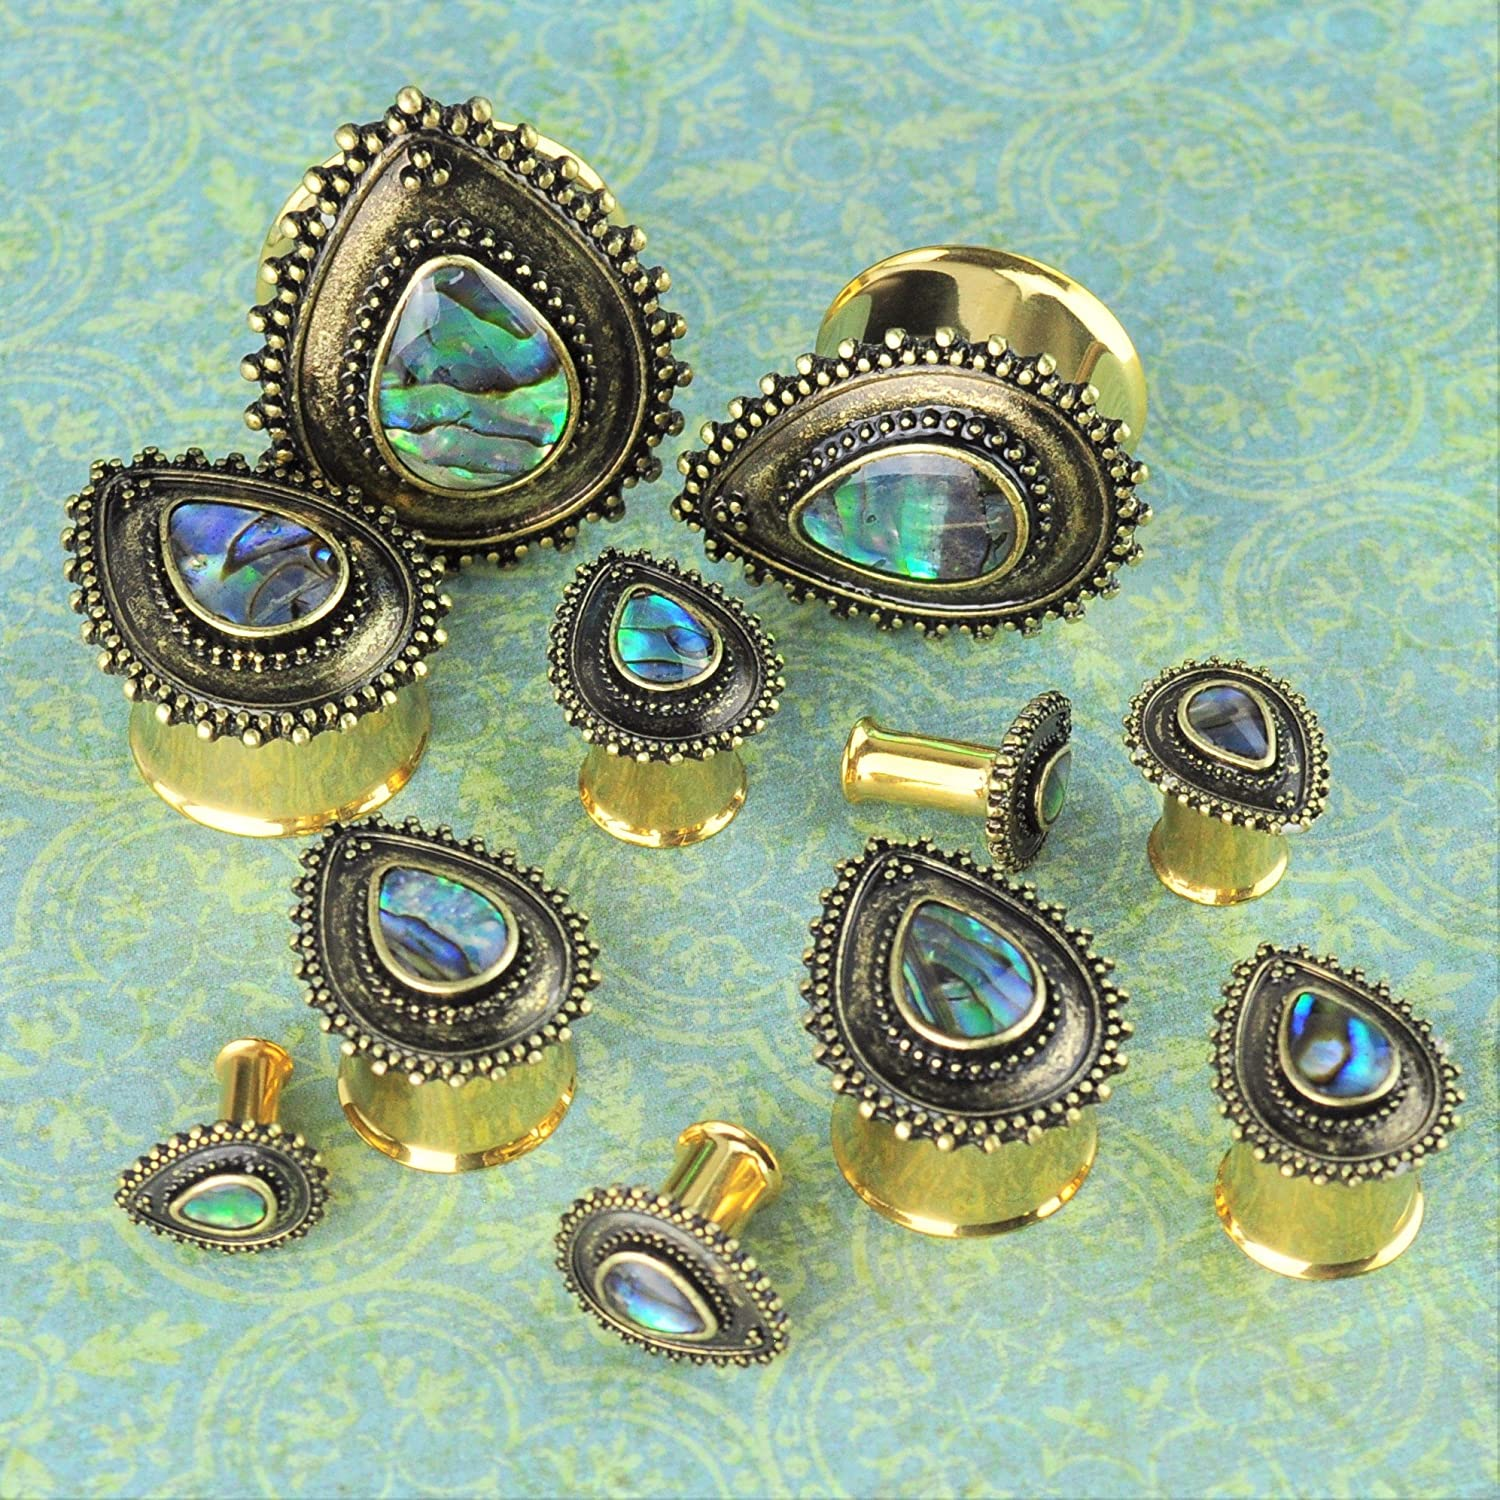 ArcticBuffalo Gold PVD Stainless Steel Teardrop Plugs with Abalone Shell Ear Gauges